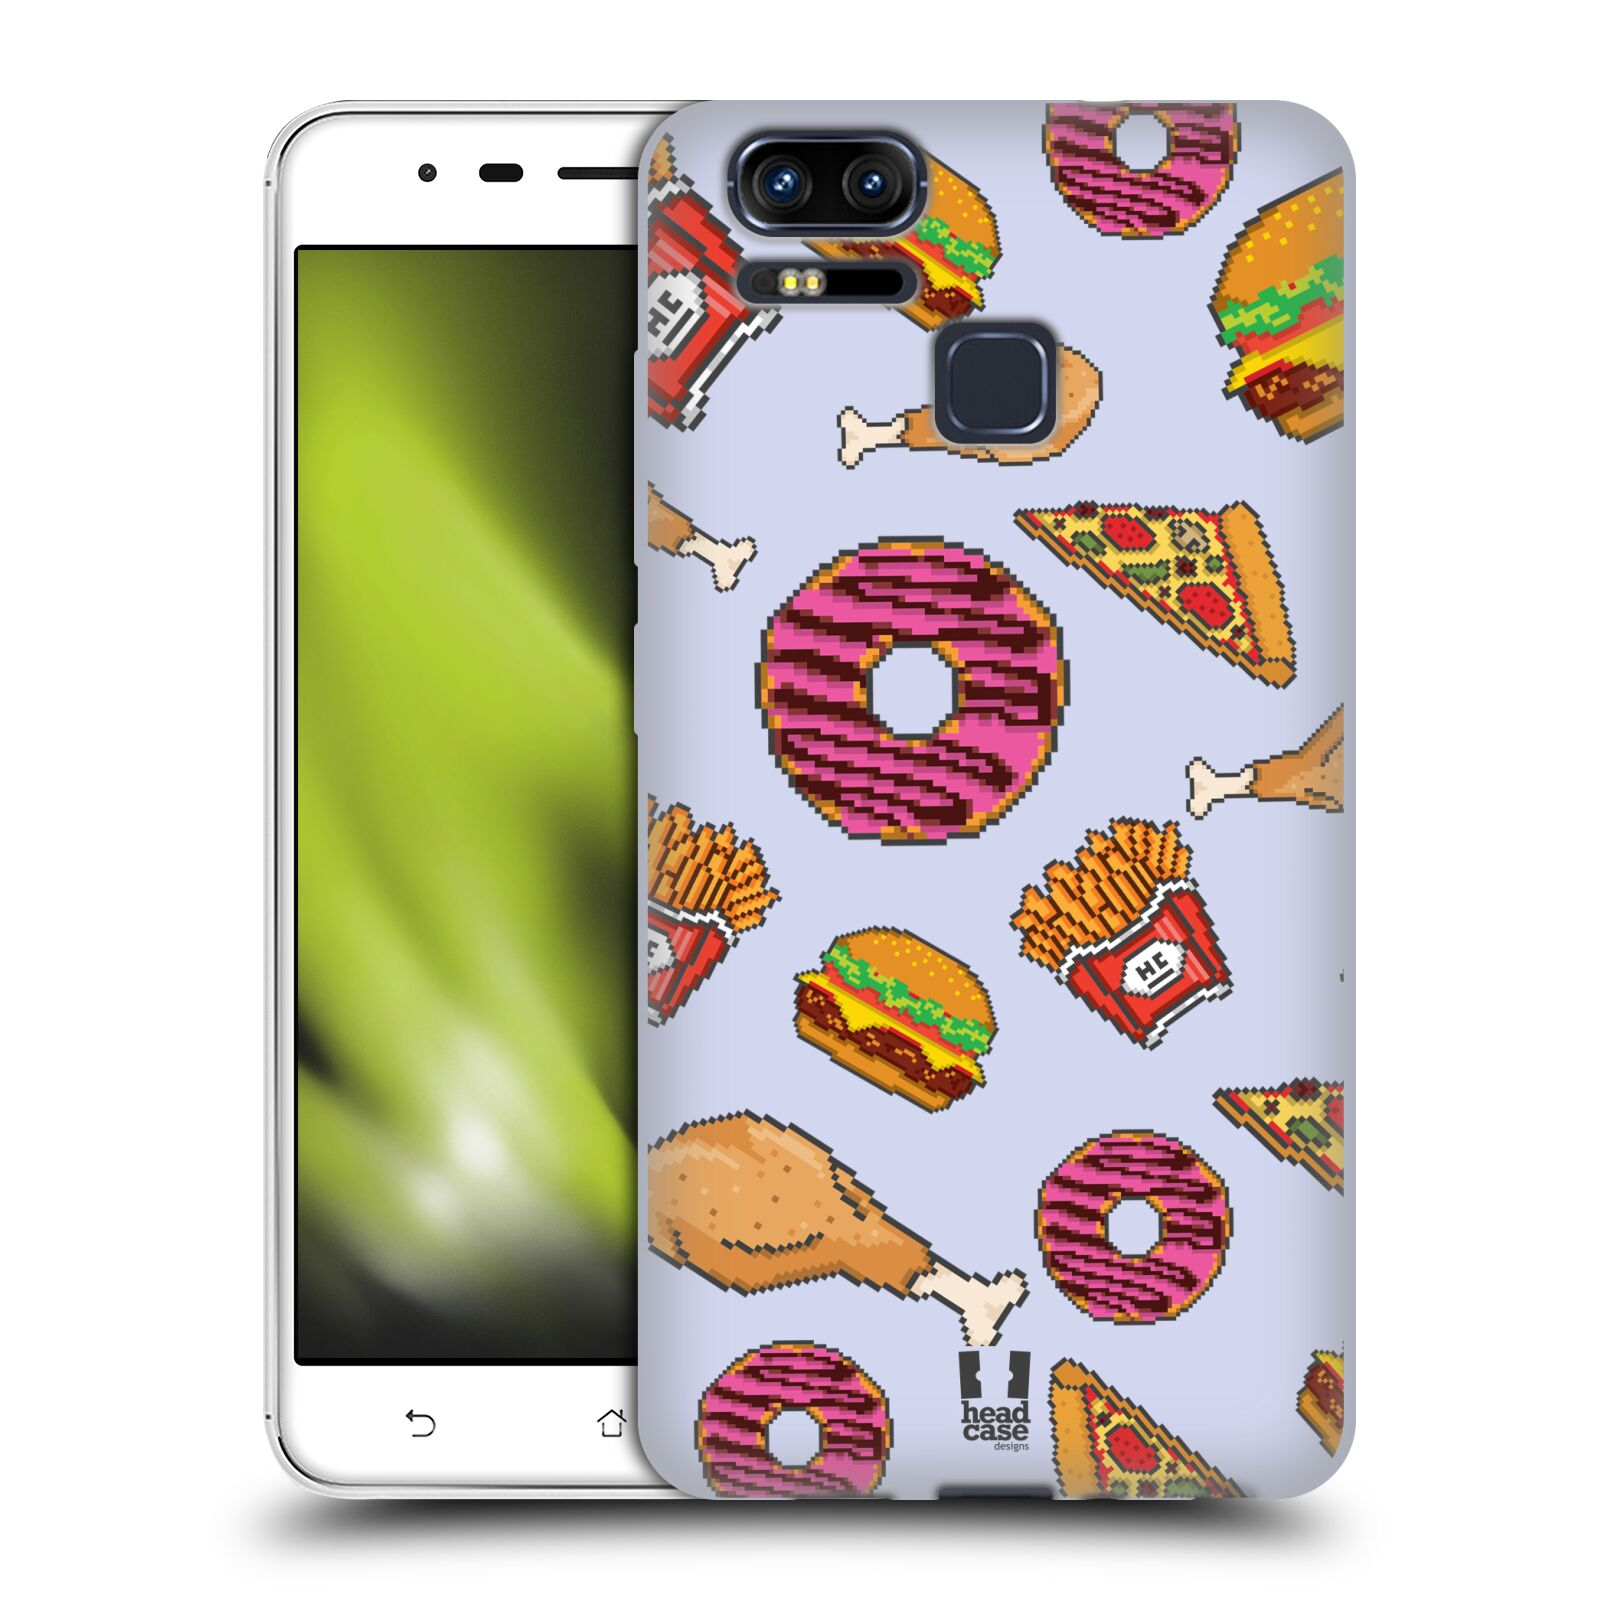 HEAD-CASE-DESIGNS-PIXEL-FOOD-SOFT-GEL-CASE-FOR-ASUS-ZENFONE-3-ZOOM-ZE553KL